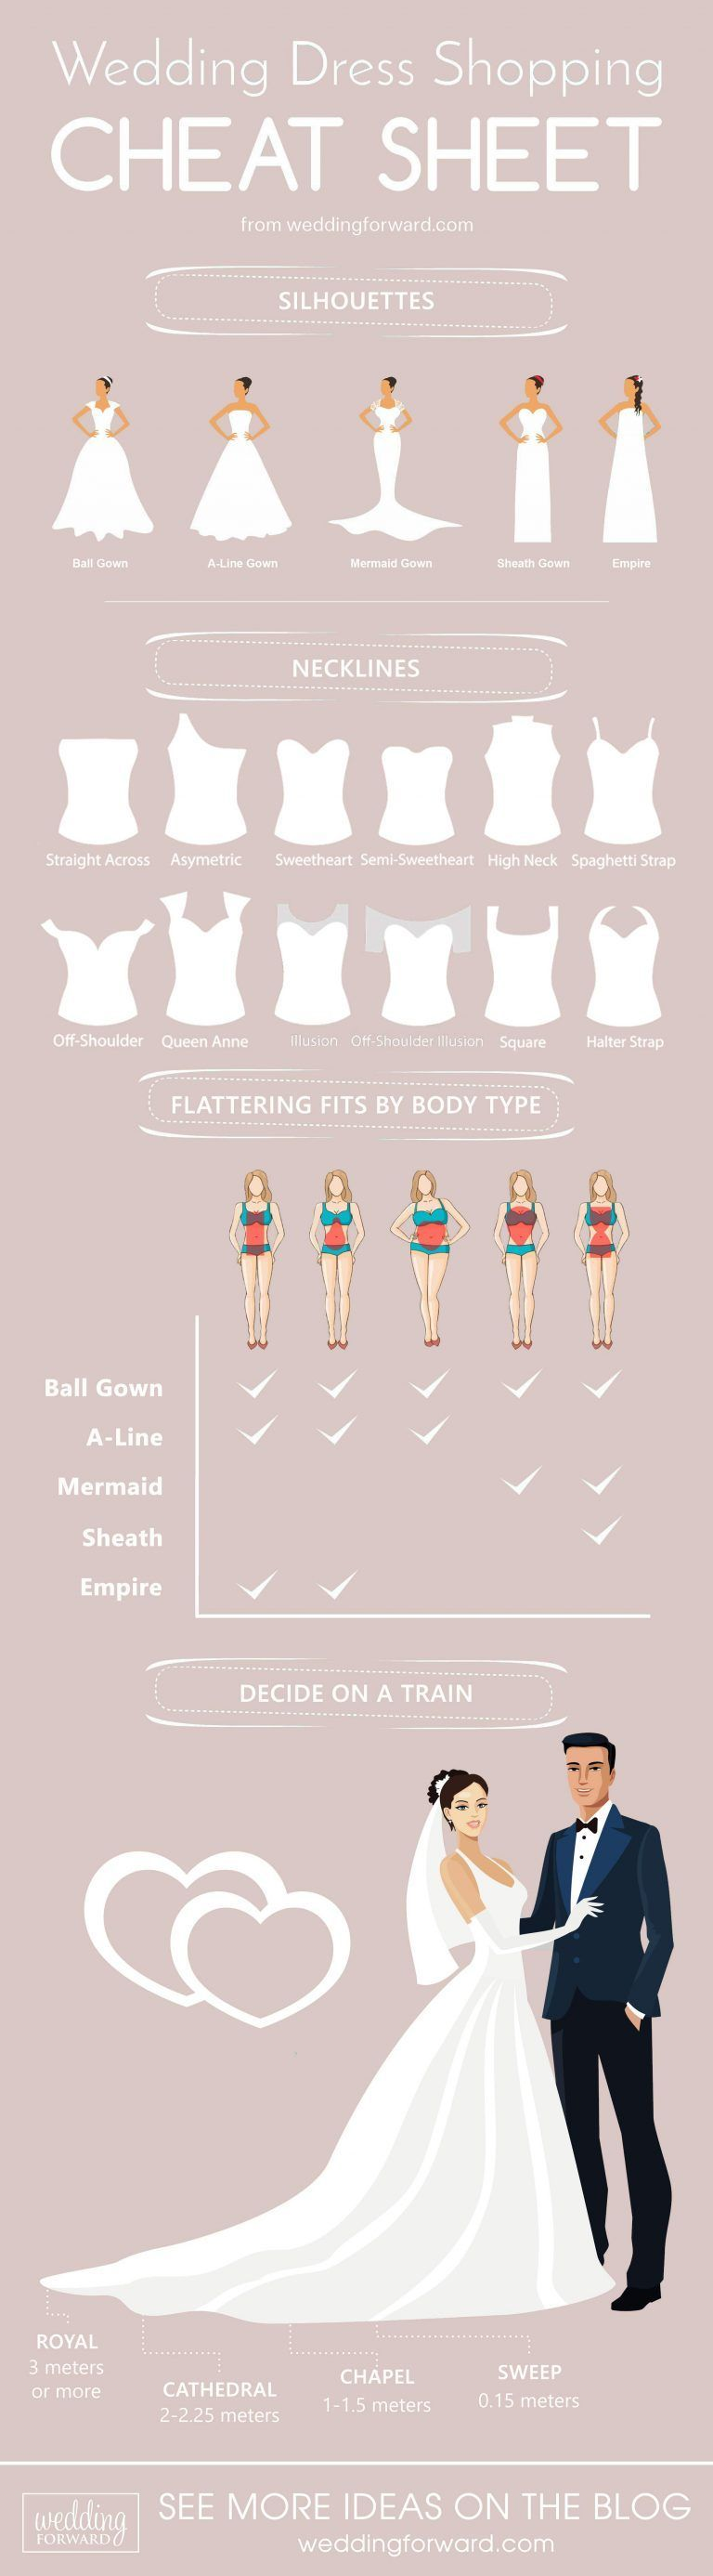 Wedding dress for body type  guide to wedding dresses infographic cheat sheet  Wedding Ideas